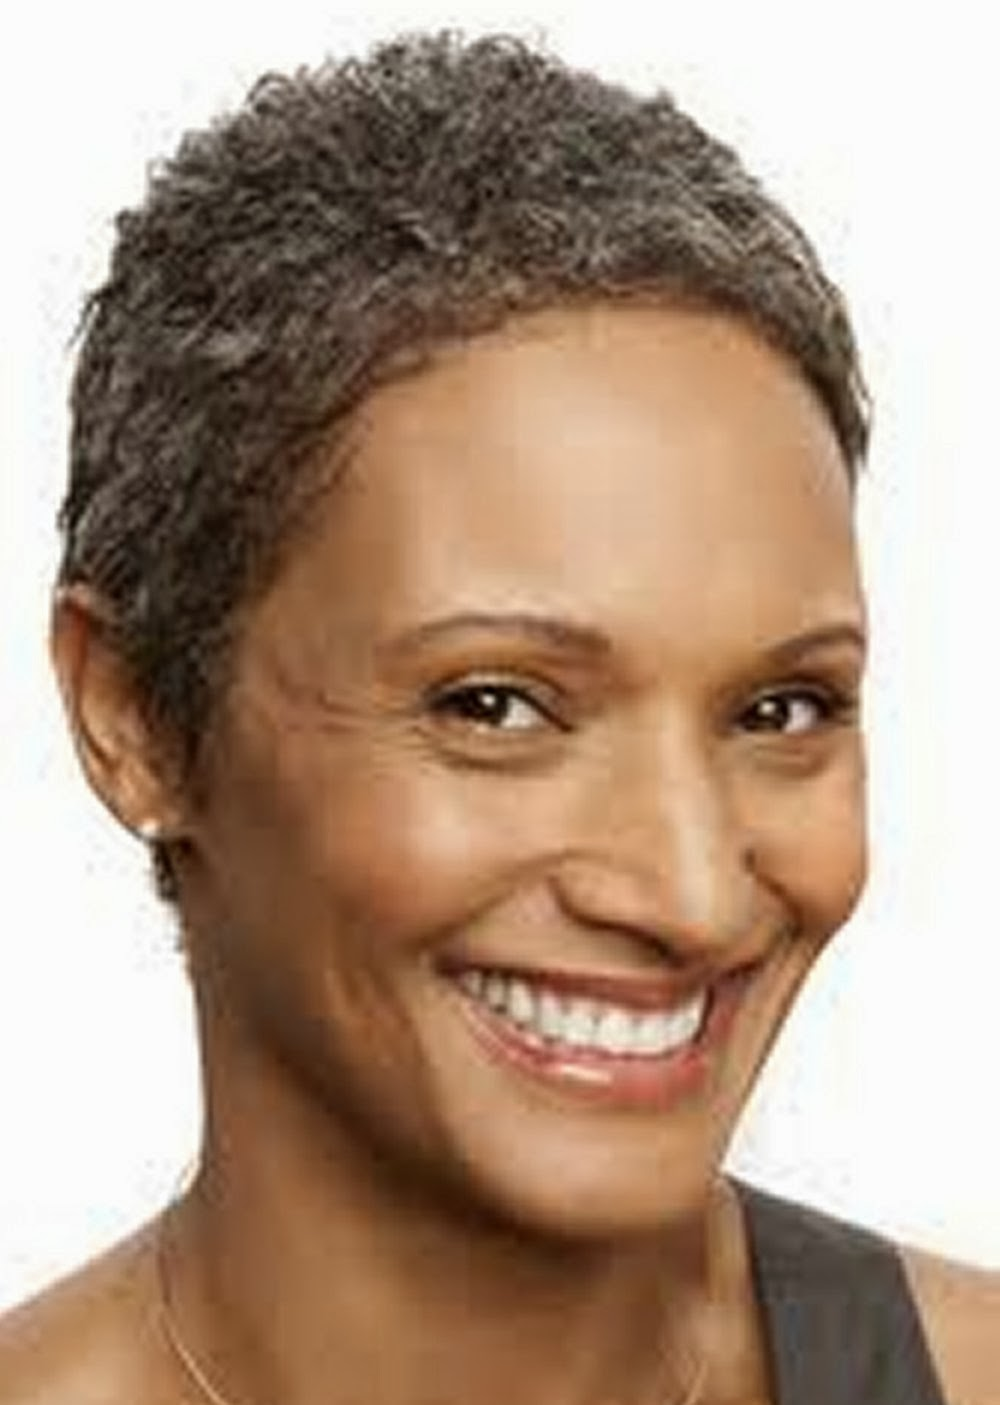 Swell Trendy Short Hairstyles For Black Women Over Short Hairstyles For Black Women Fulllsitofus